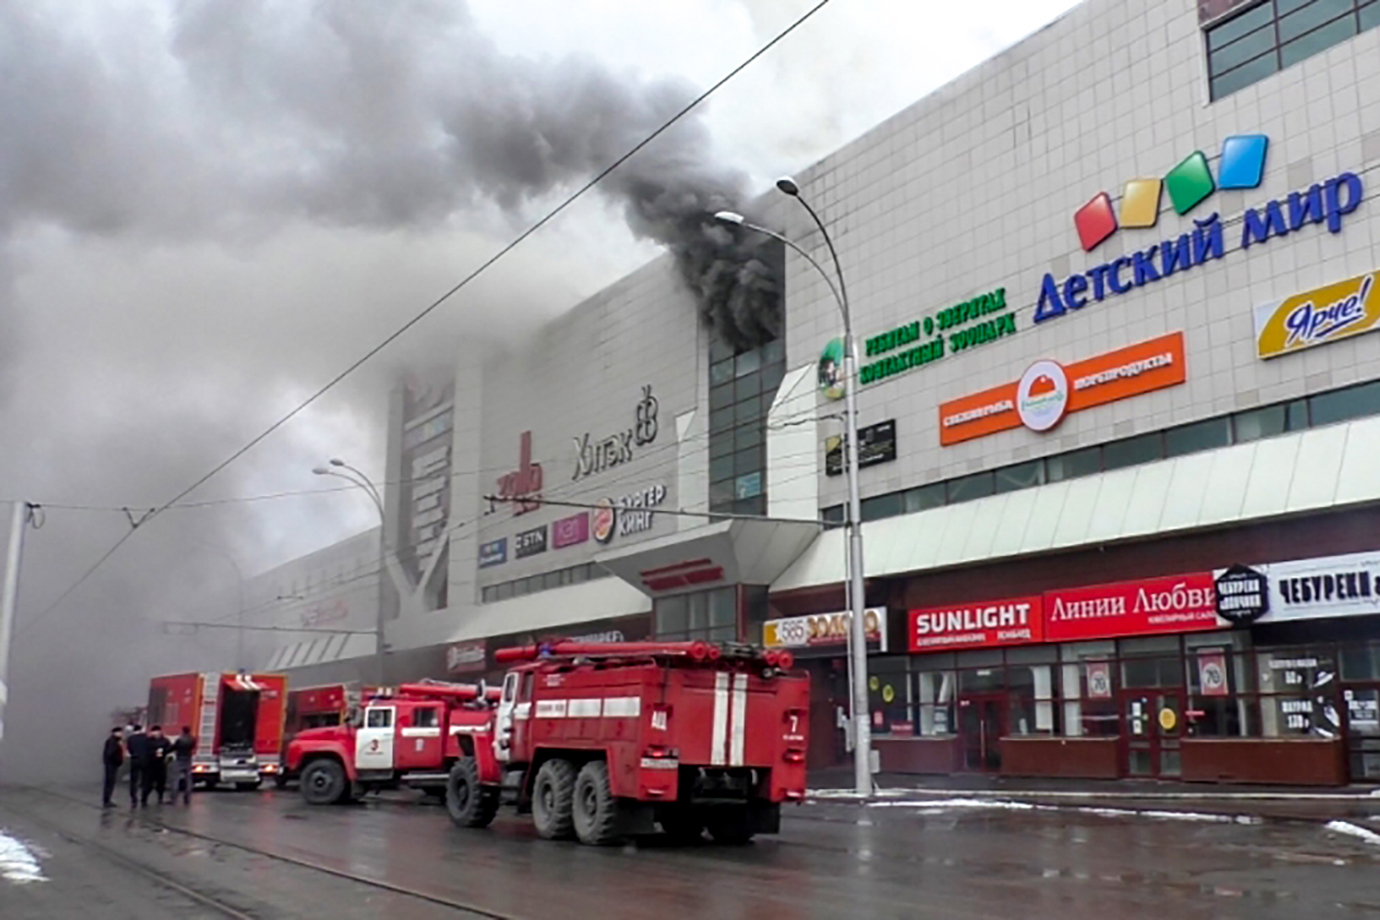 About 40 people died in a fire at a Russian shopping mall